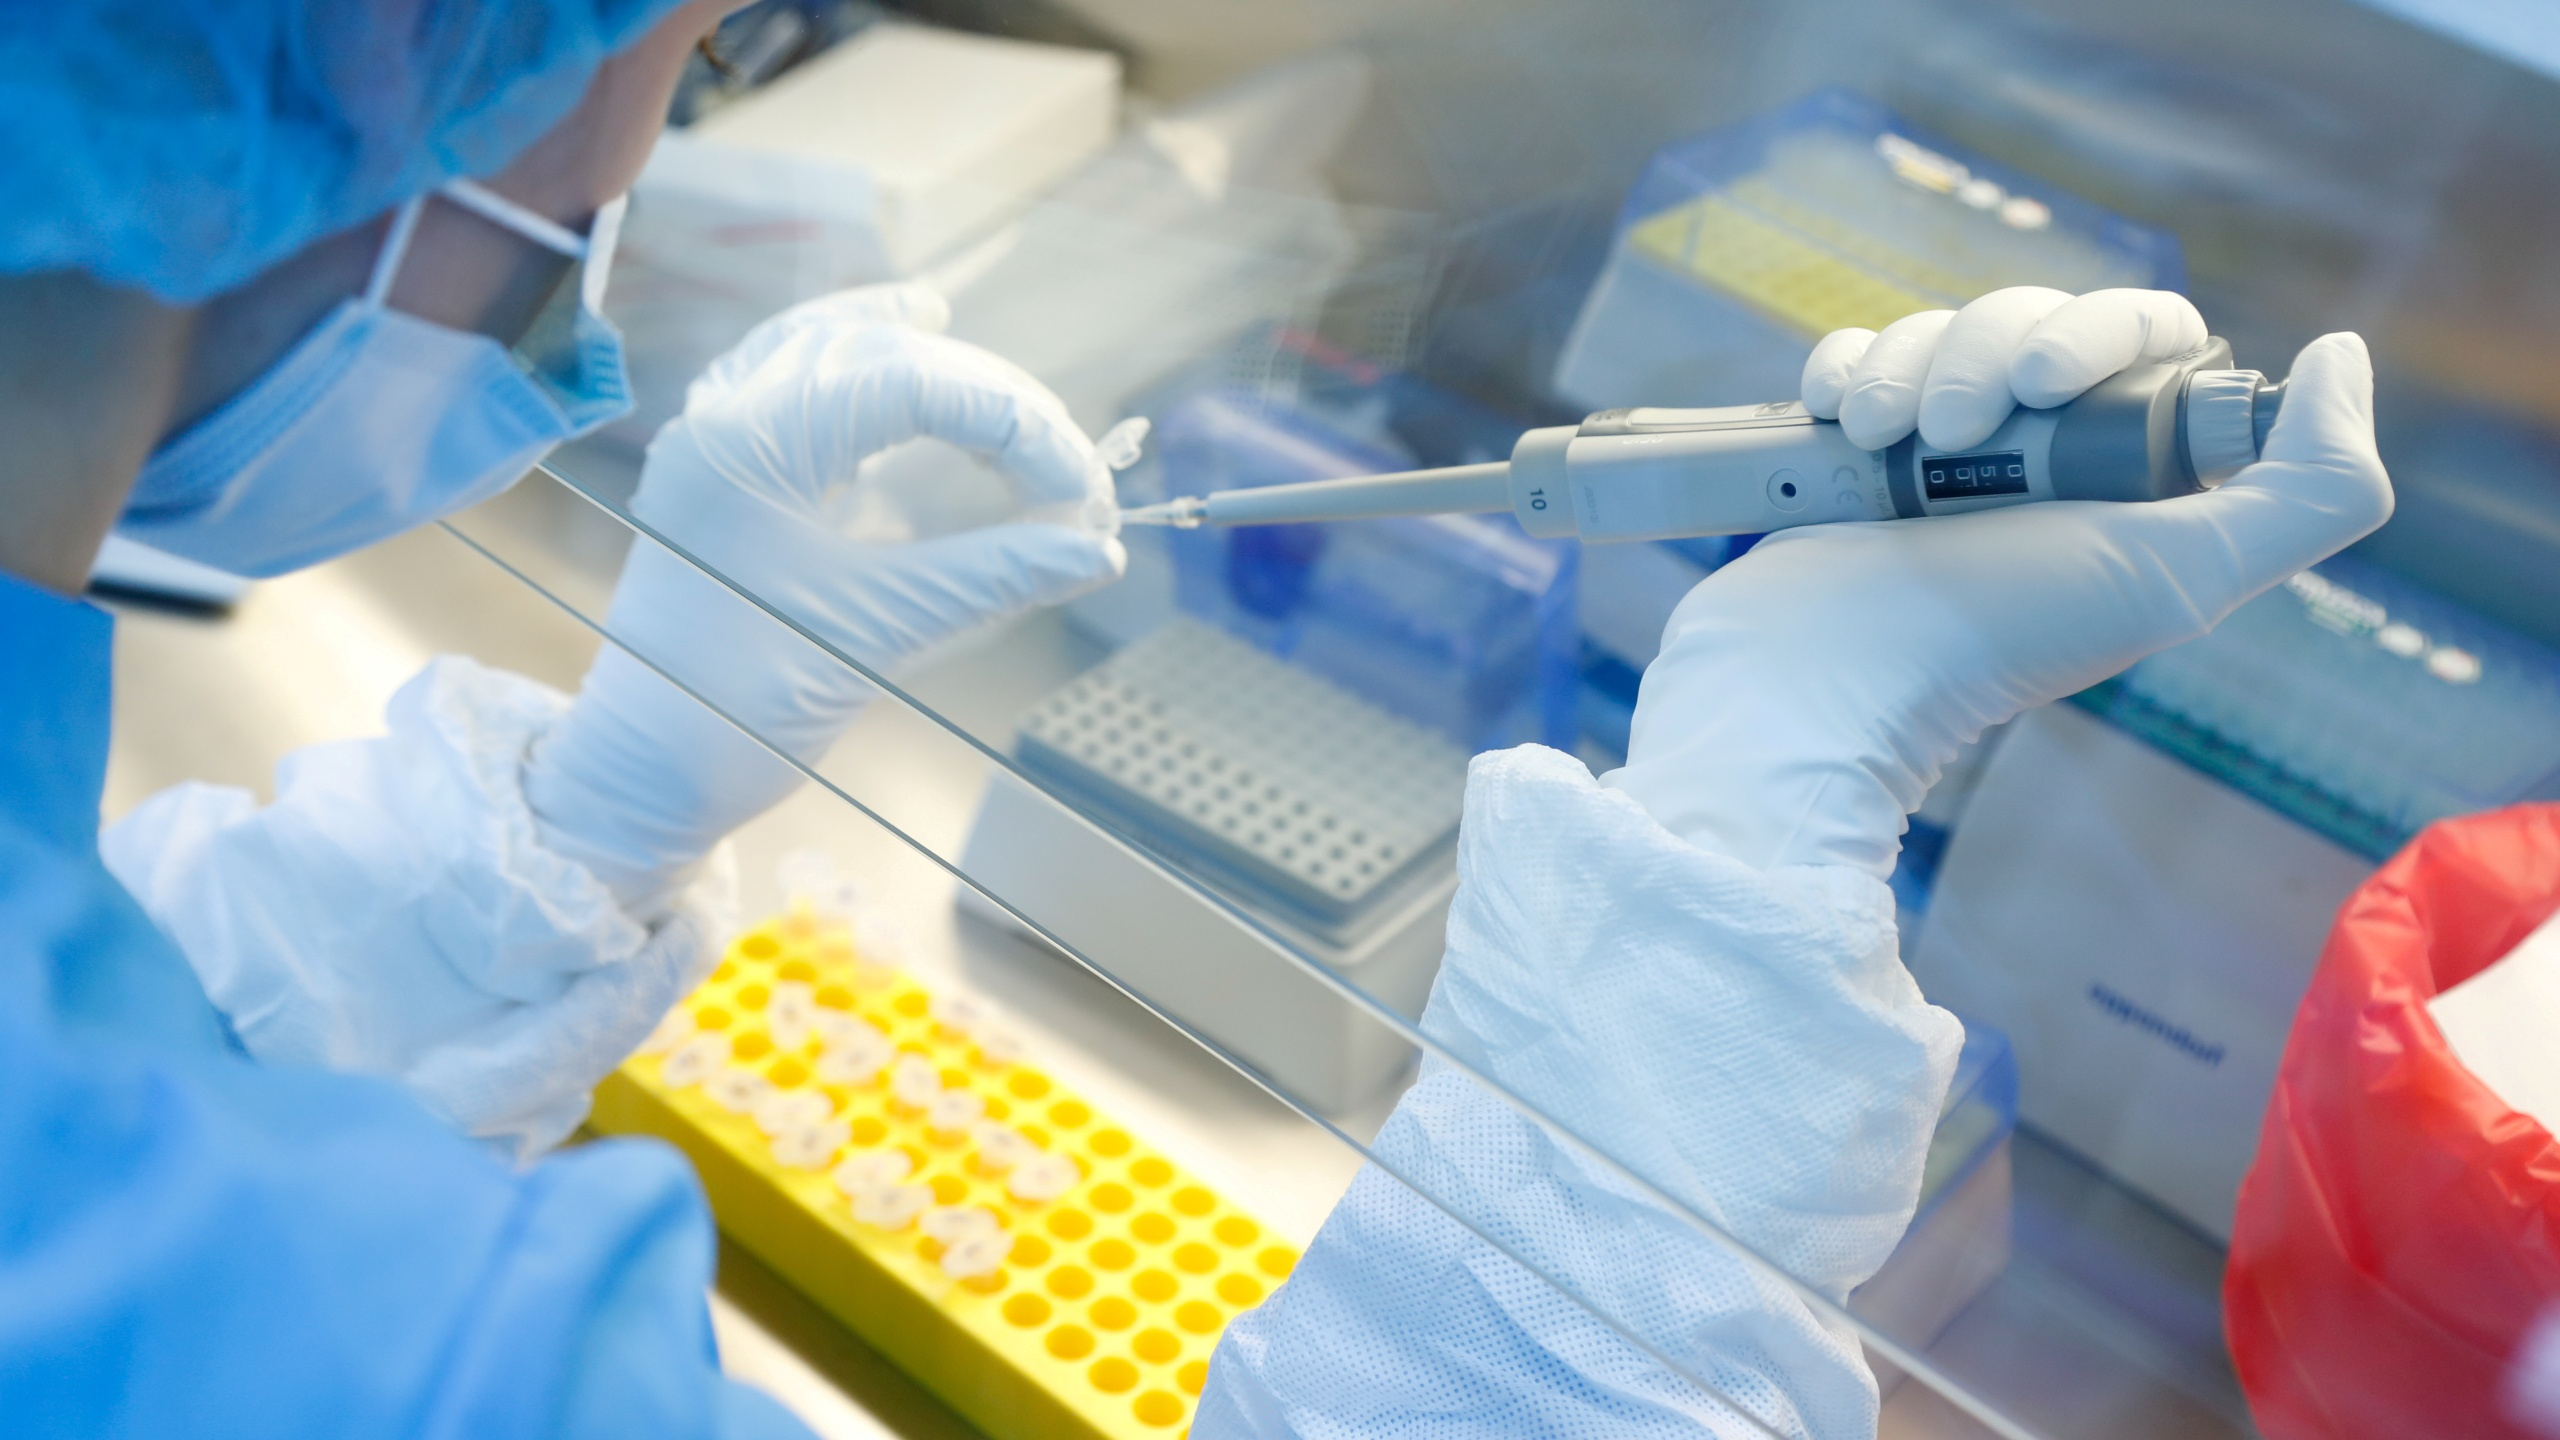 FILE PHOTO: A scientist prepares samples during the research and development of a vaccine against the coronavirus disease (COVID-19) at a laboratory of BIOCAD biotechnology company in Saint Petersburg, Russia June 11, 2020. REUTERS/Anton Vaganov/File Photo